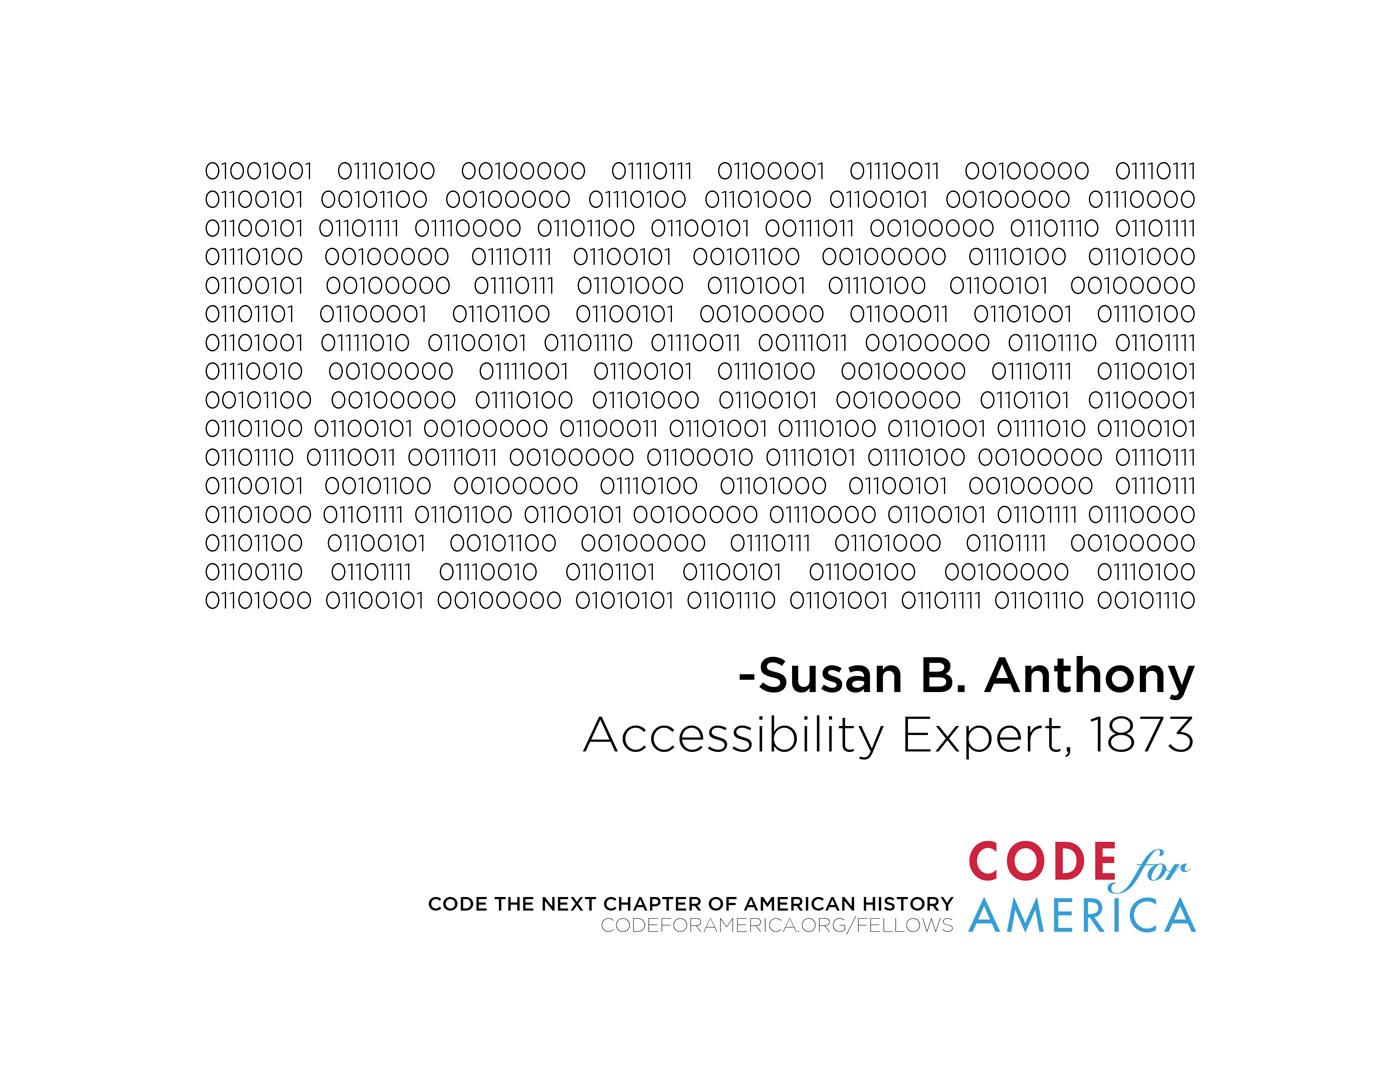 Code for America Print Ad -  Susan B. Anthony, 1873, Accessibility Expert